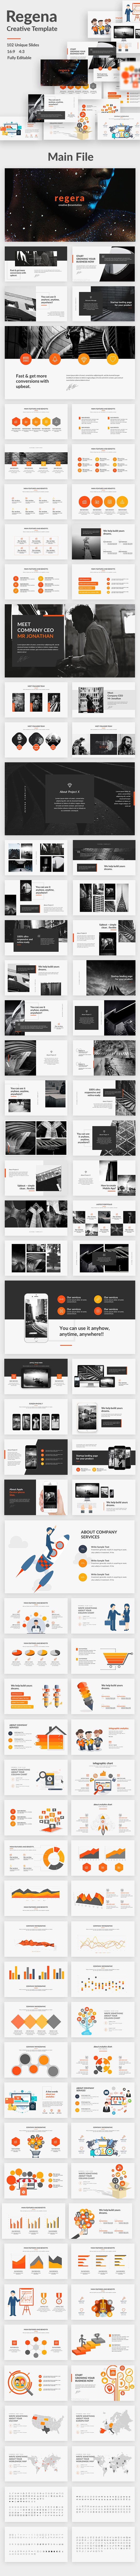 GraphicRiver Regena Creative Google Slide Template 20365356